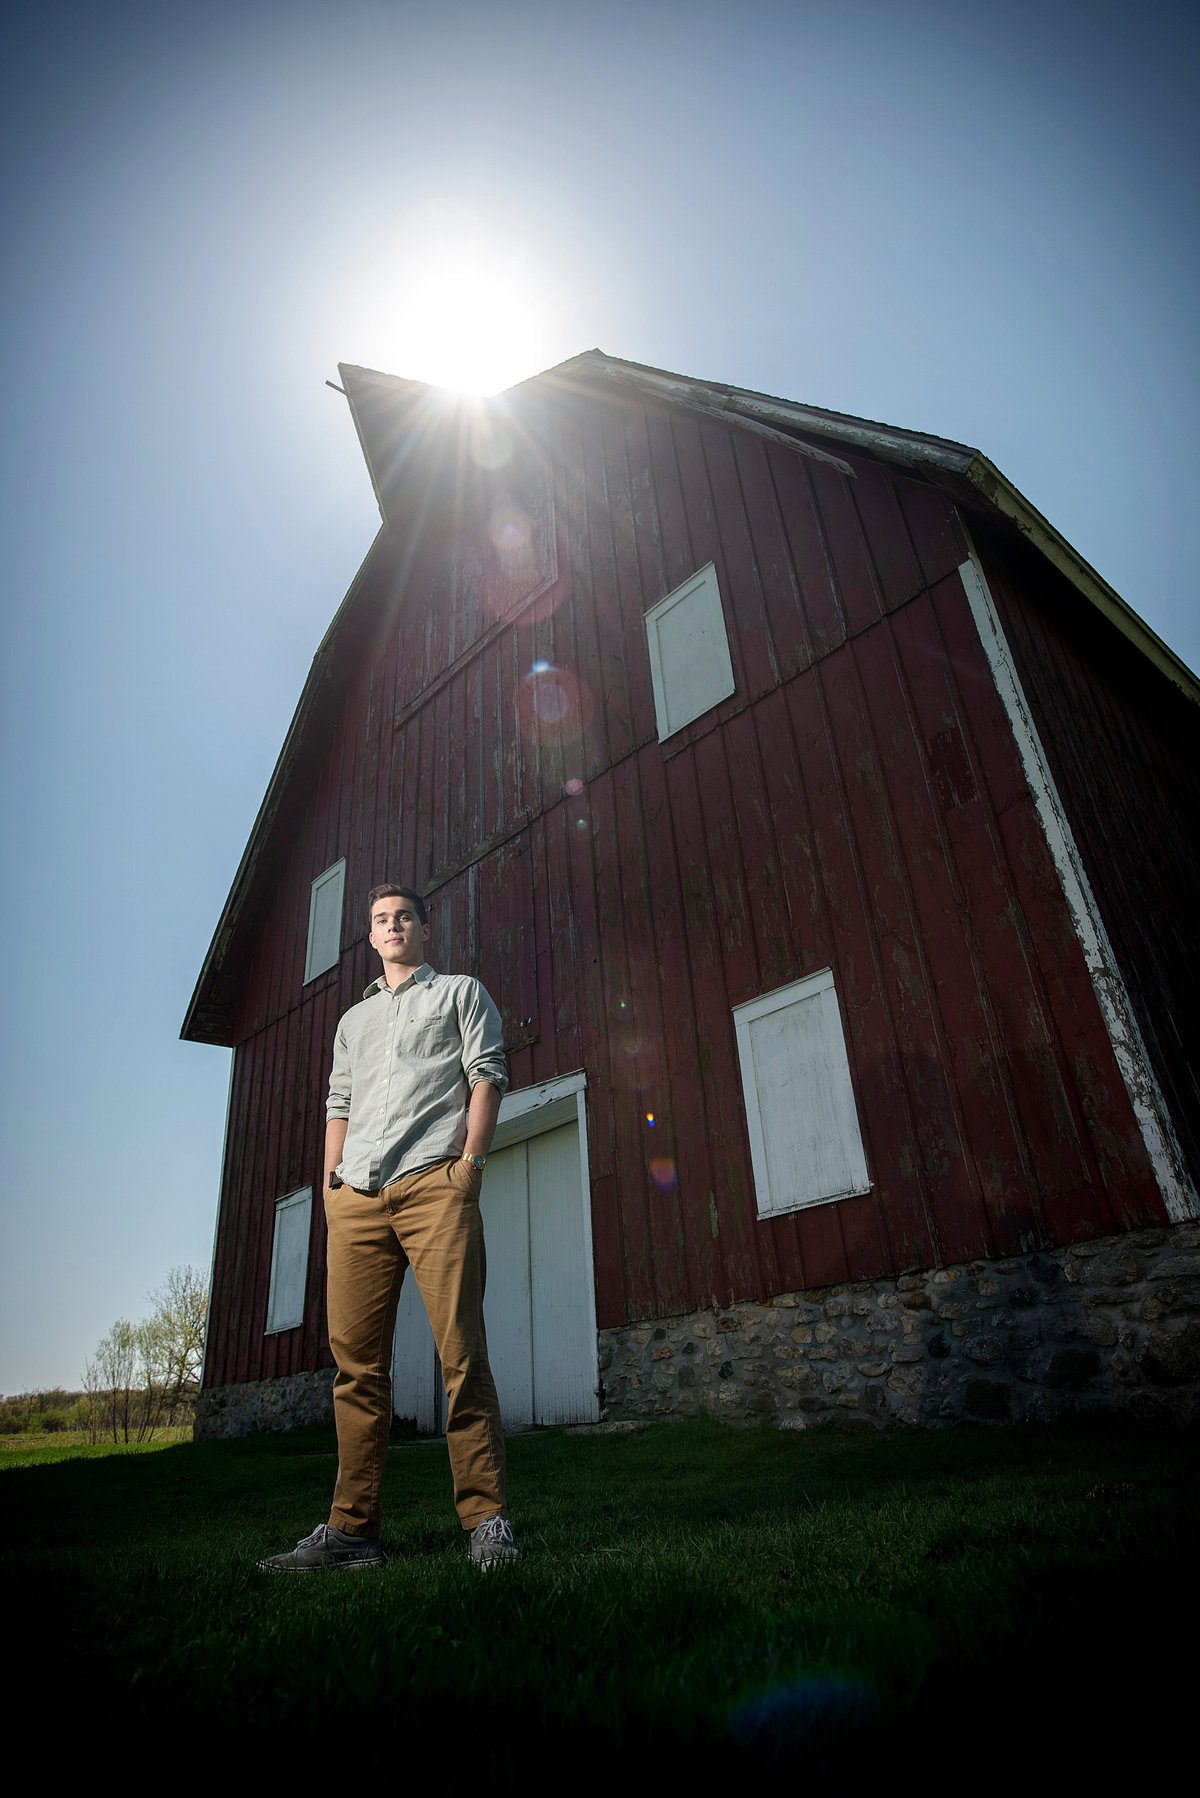 leroy-oaks-forest-preserve-red-barn-senior-portrait-St. Charles-Illinois